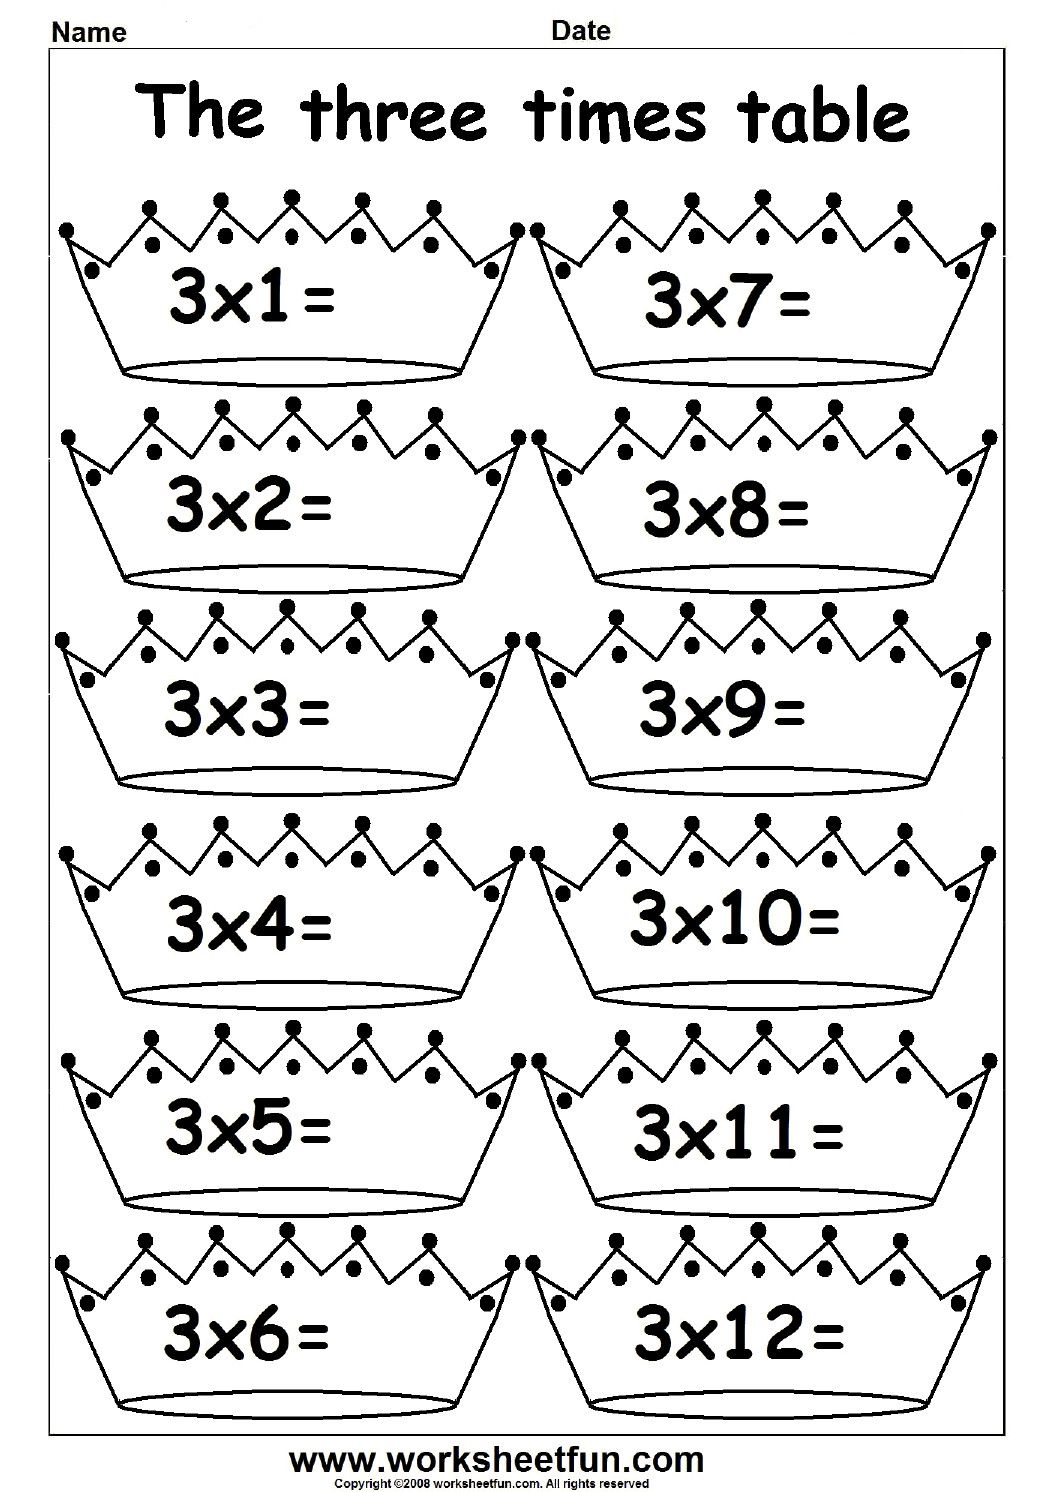 7 Multiply By 9 Worksheet Easy In 2020 Times Tables Worksheets Multiplication Learning Worksheets